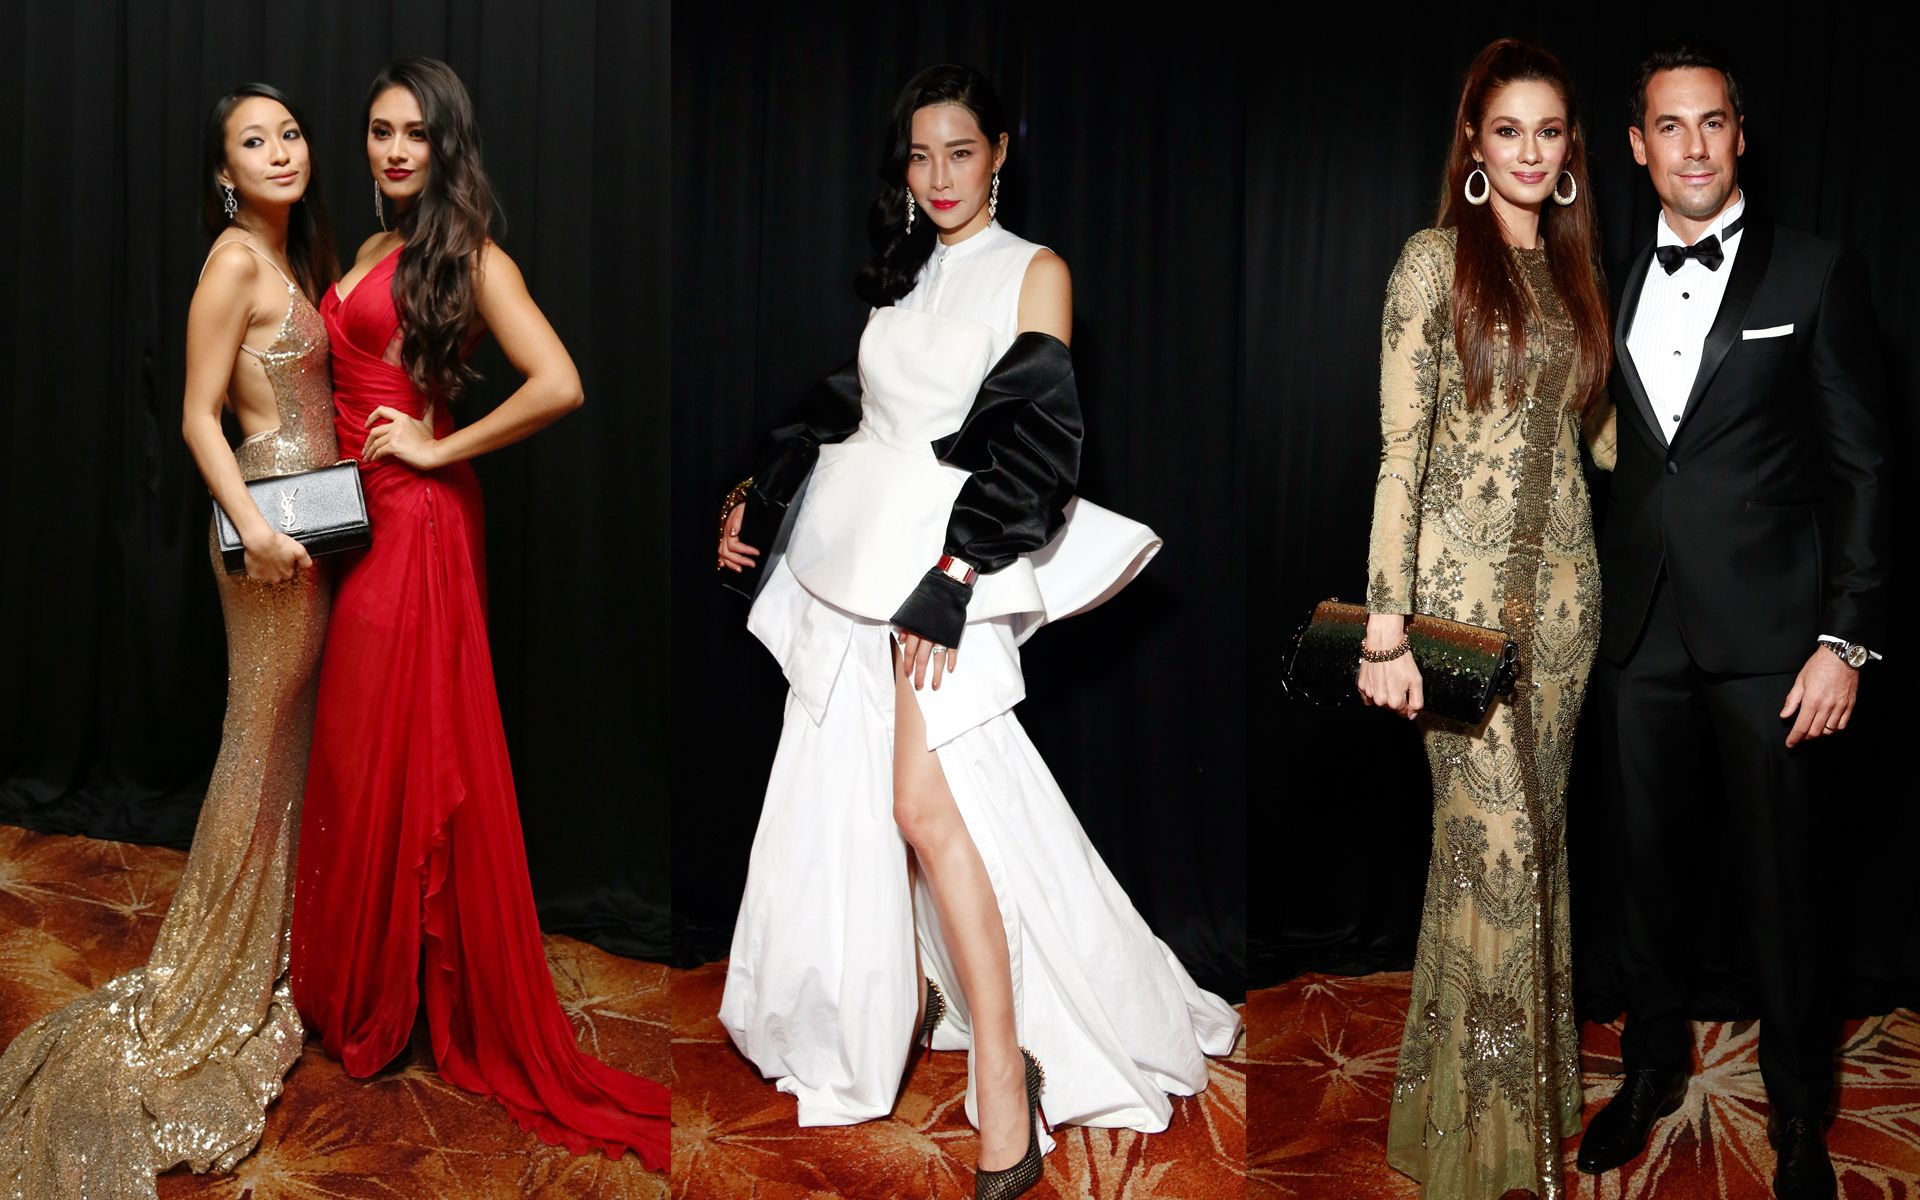 Best dressed men and women at the Malaysia Tatler Ball 2017